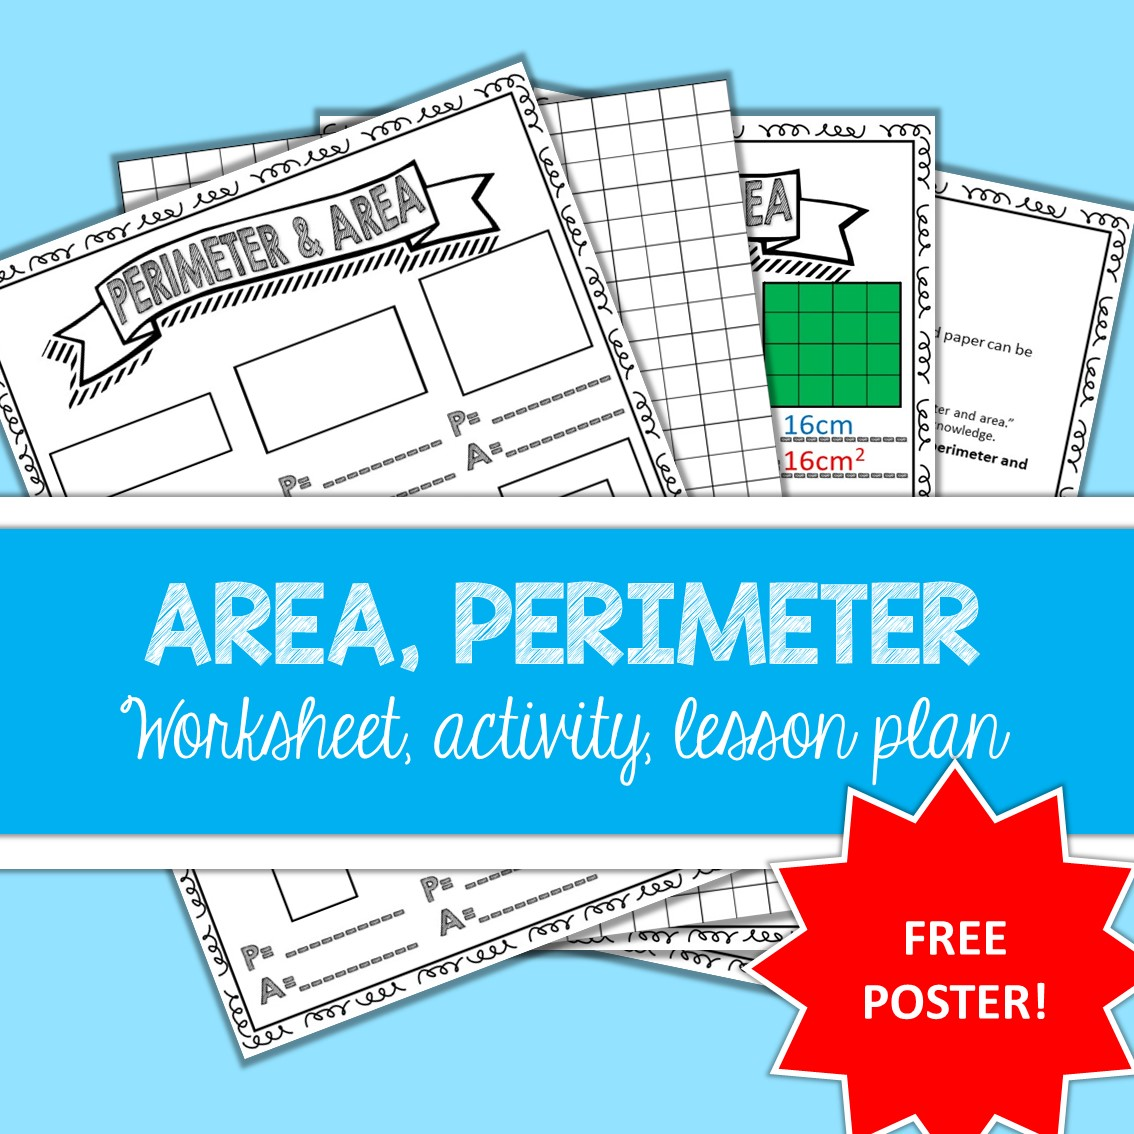 Area Perimeter Worksheet Activity Teacha